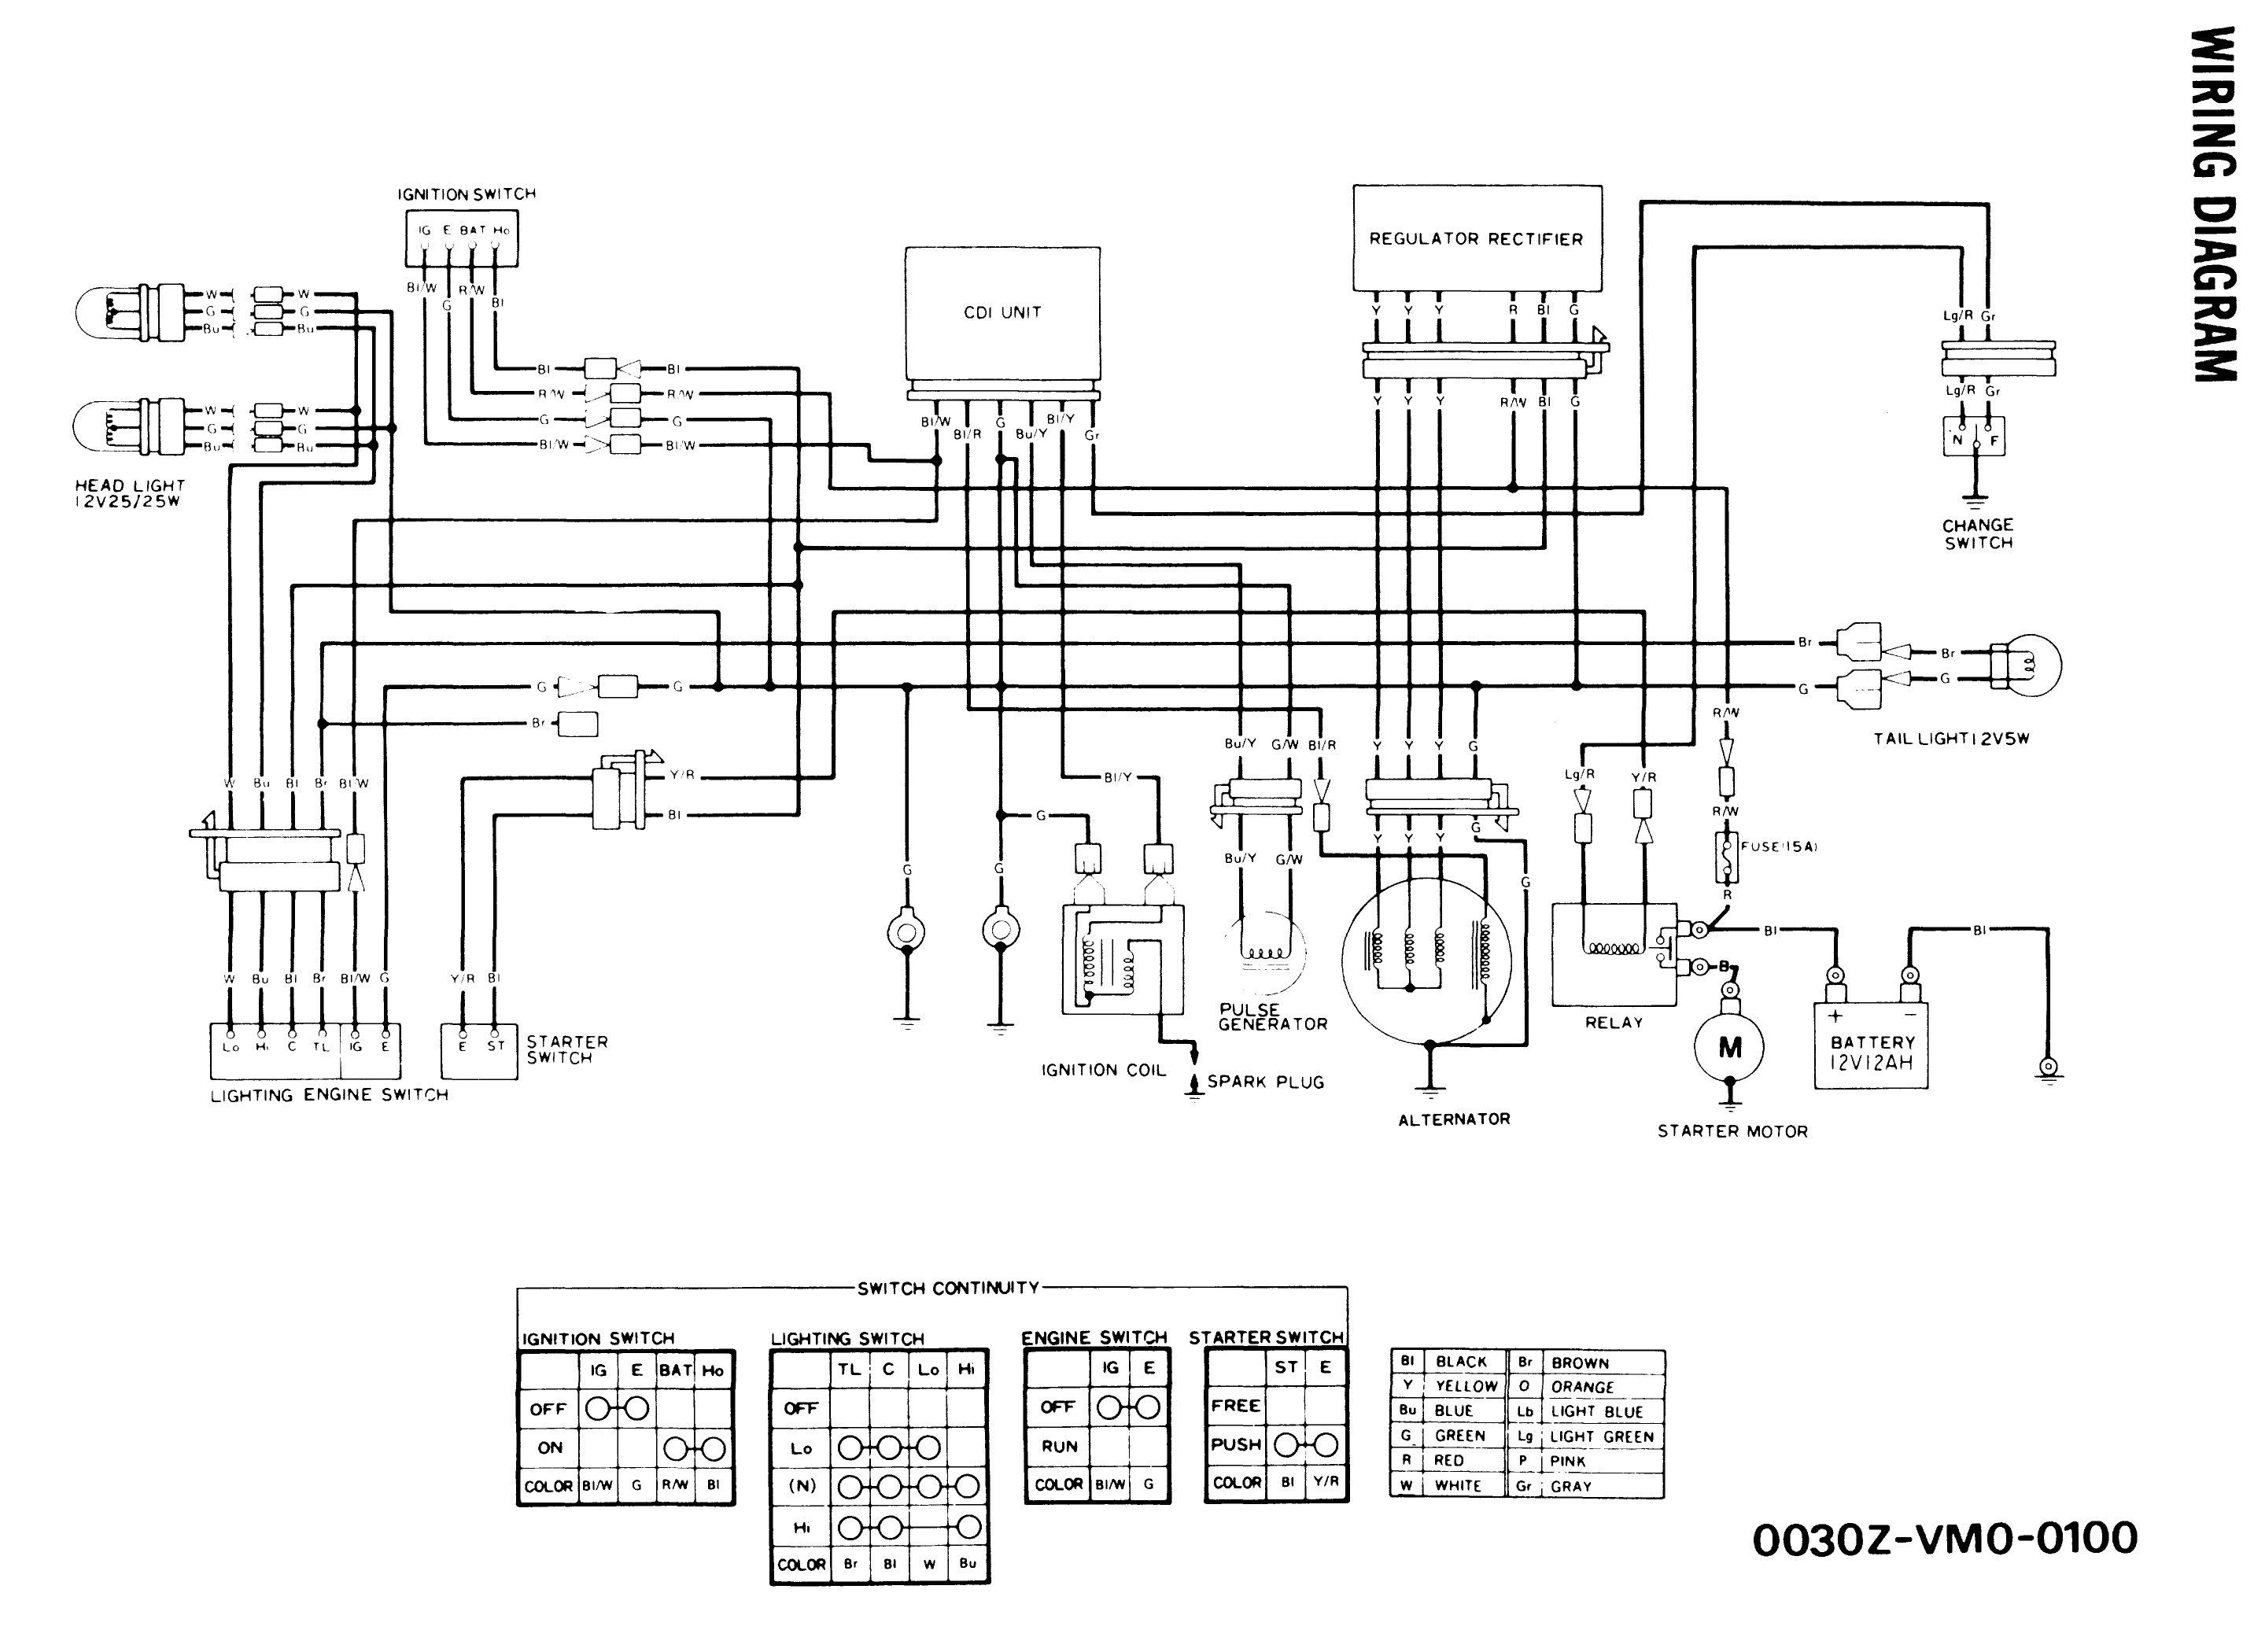 Wiring Diagram For Honda Odyssey 2002 Ignition Switch from i0.wp.com